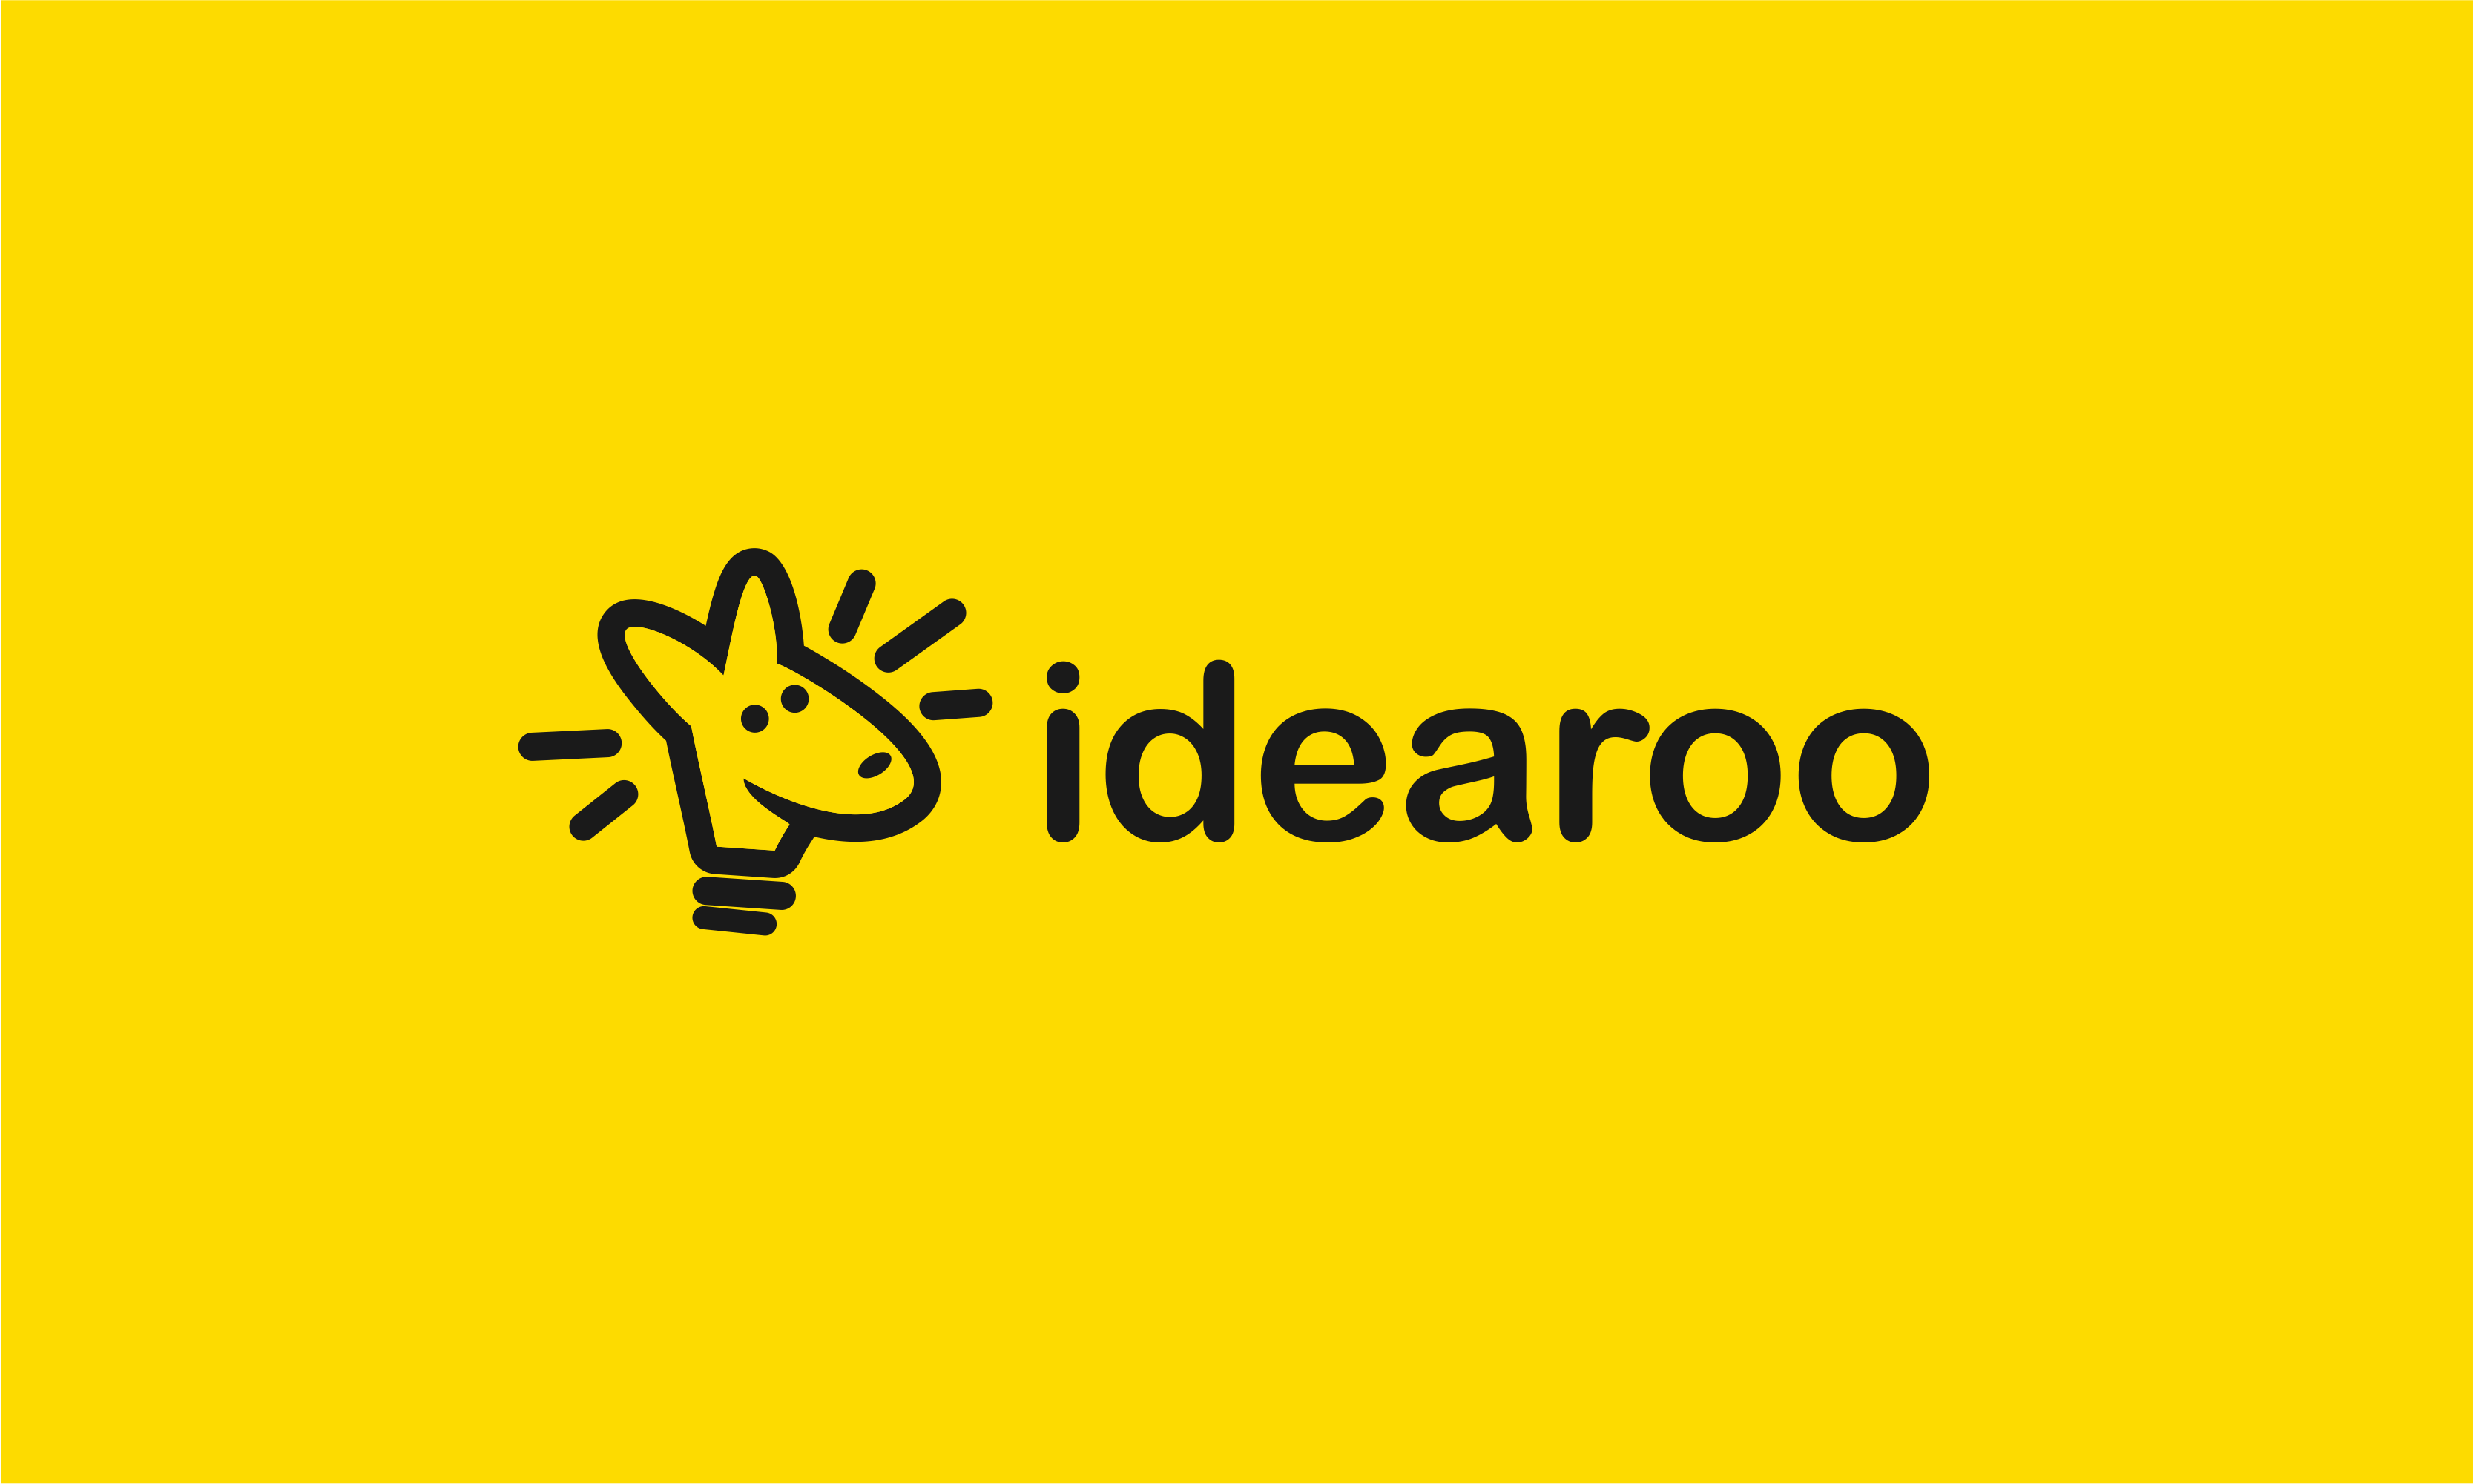 Idearoo - Audio business name for sale